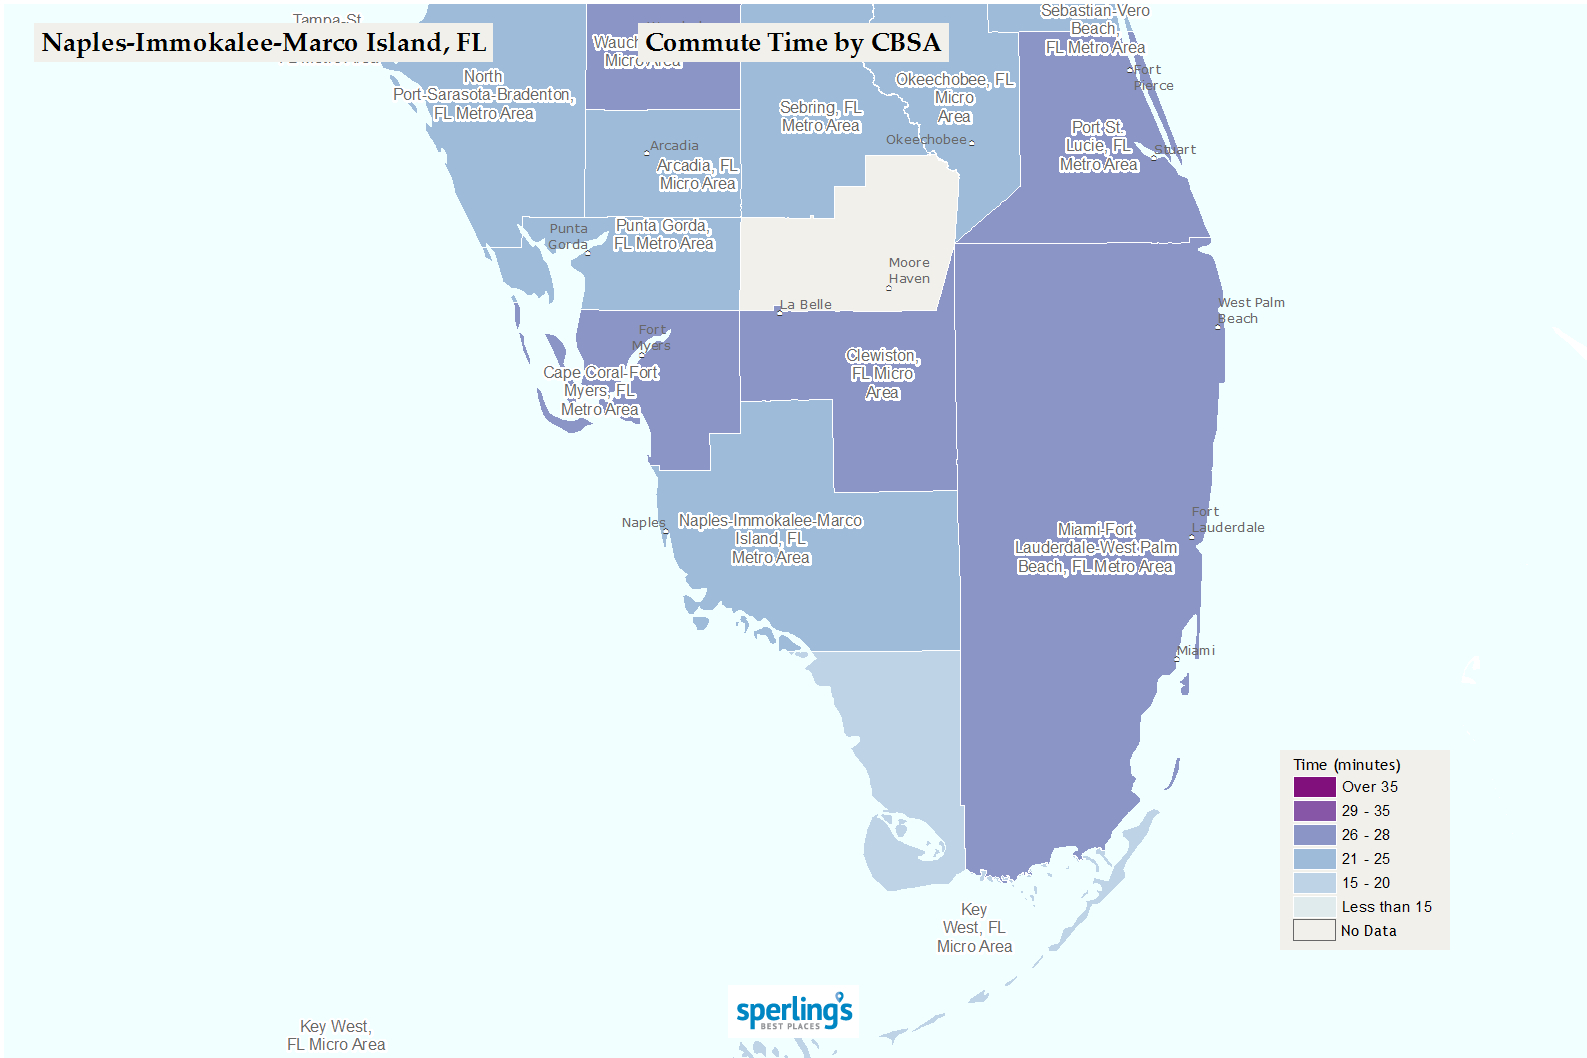 Best Places To Live | Compare Cost Of Living, Crime, Cities, Schools - Immokalee Florida Map